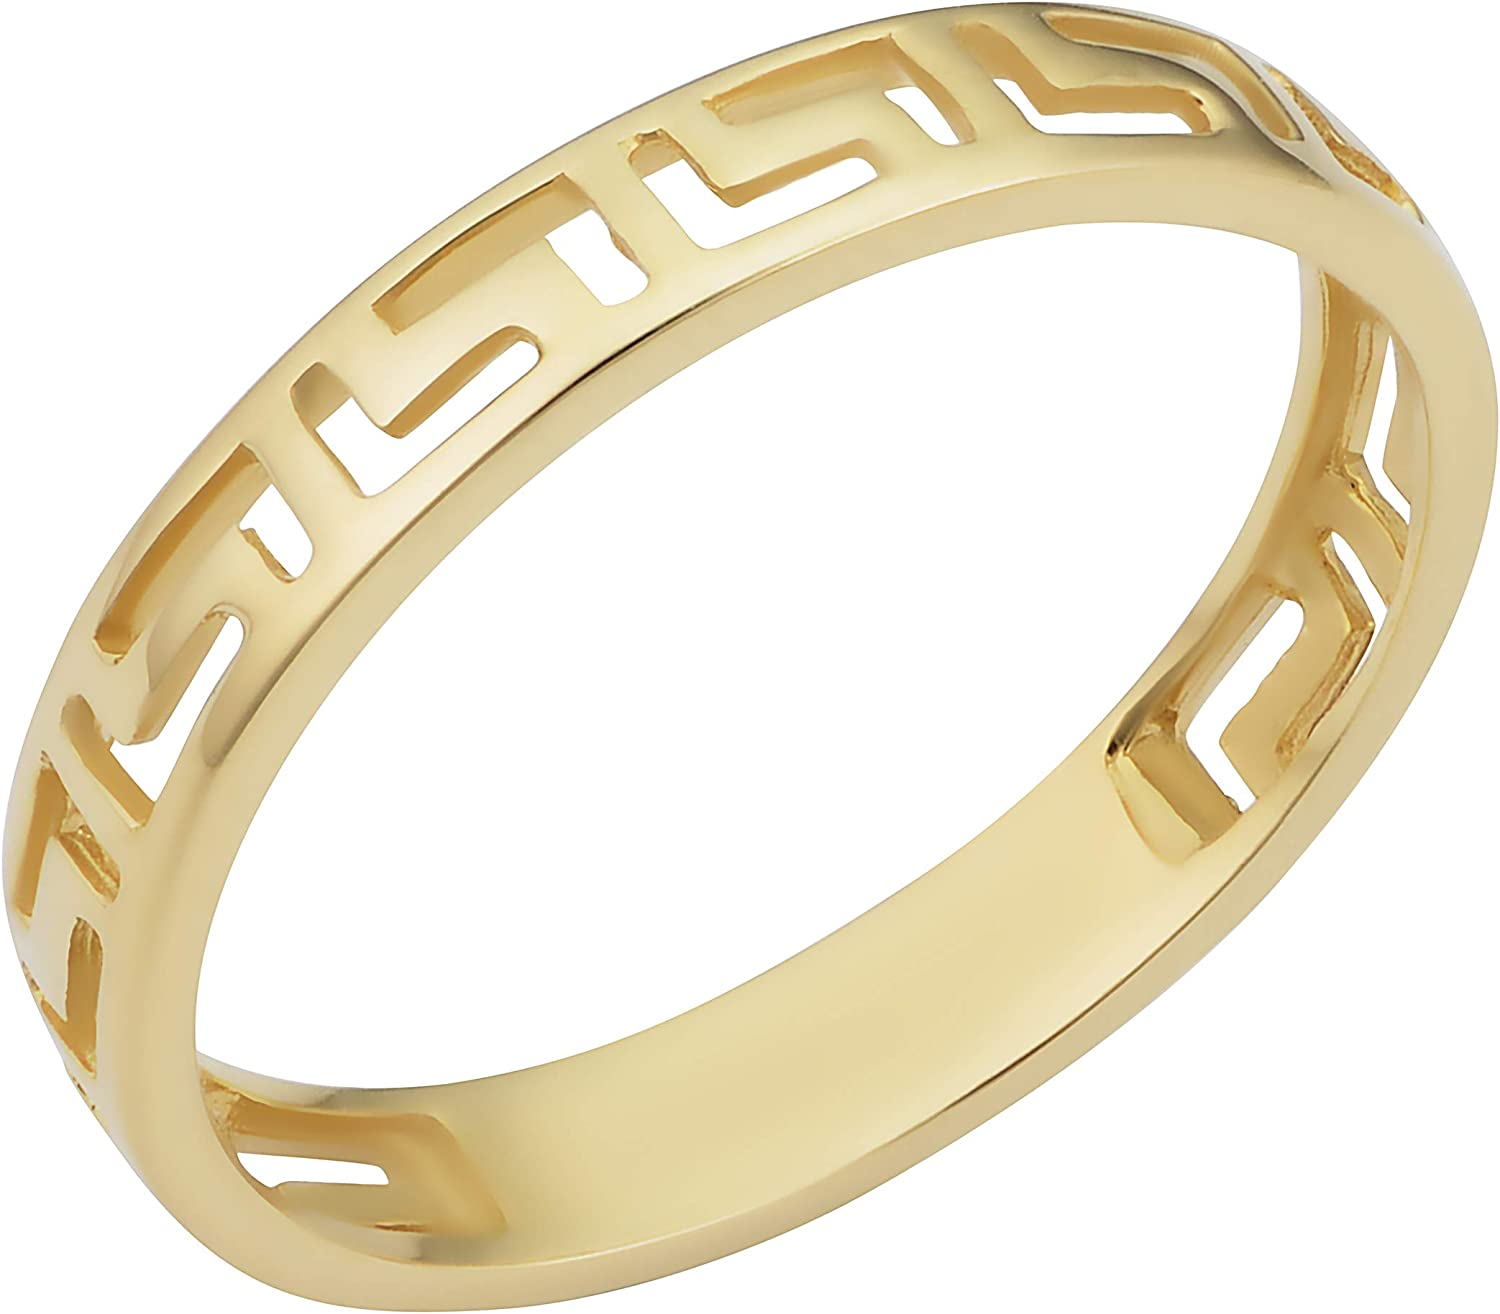 Best Price Gold Ring.K18 Gold.Greek Art.Tradithional ring.Yellow gold,Multicolor Daisy rings.Byzantine Style.Greek Ancient rings.Gold K18